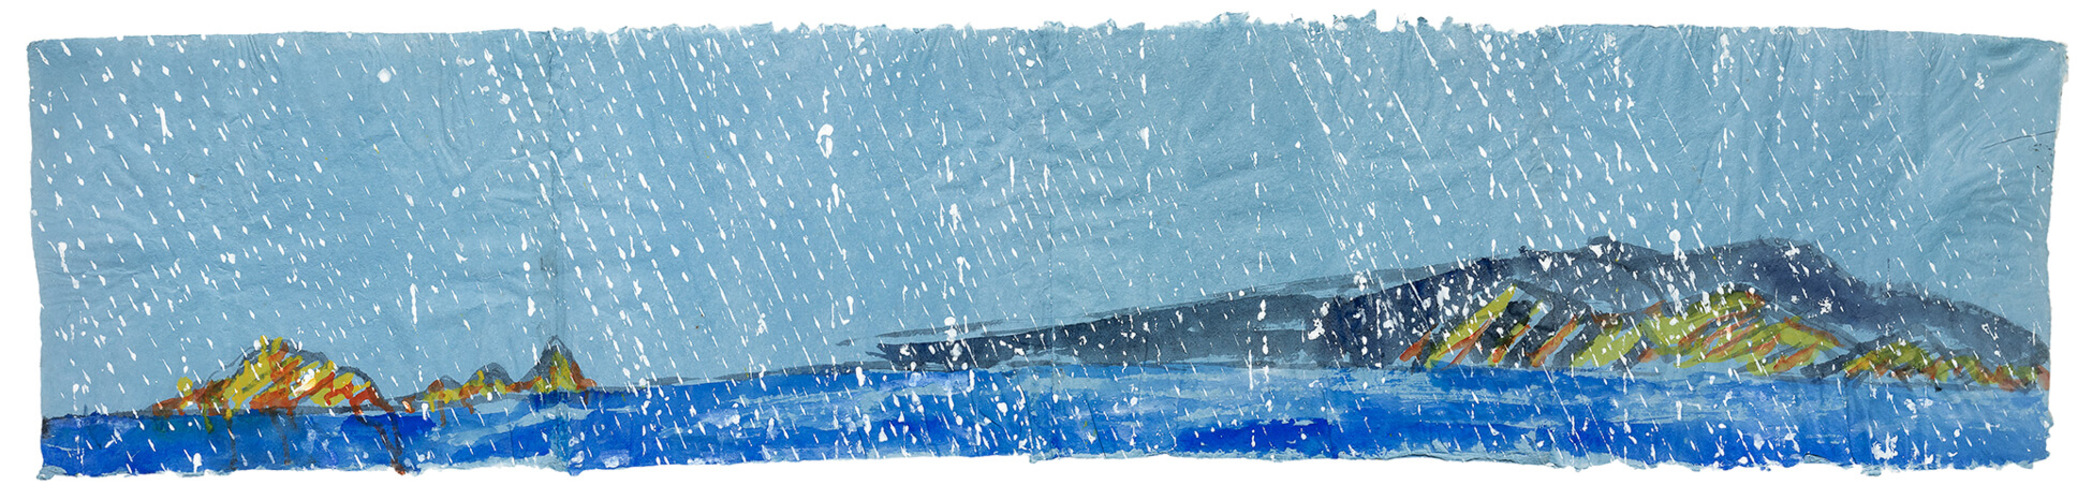 Paterson Ewen, Coastline with Precipitation, 1975